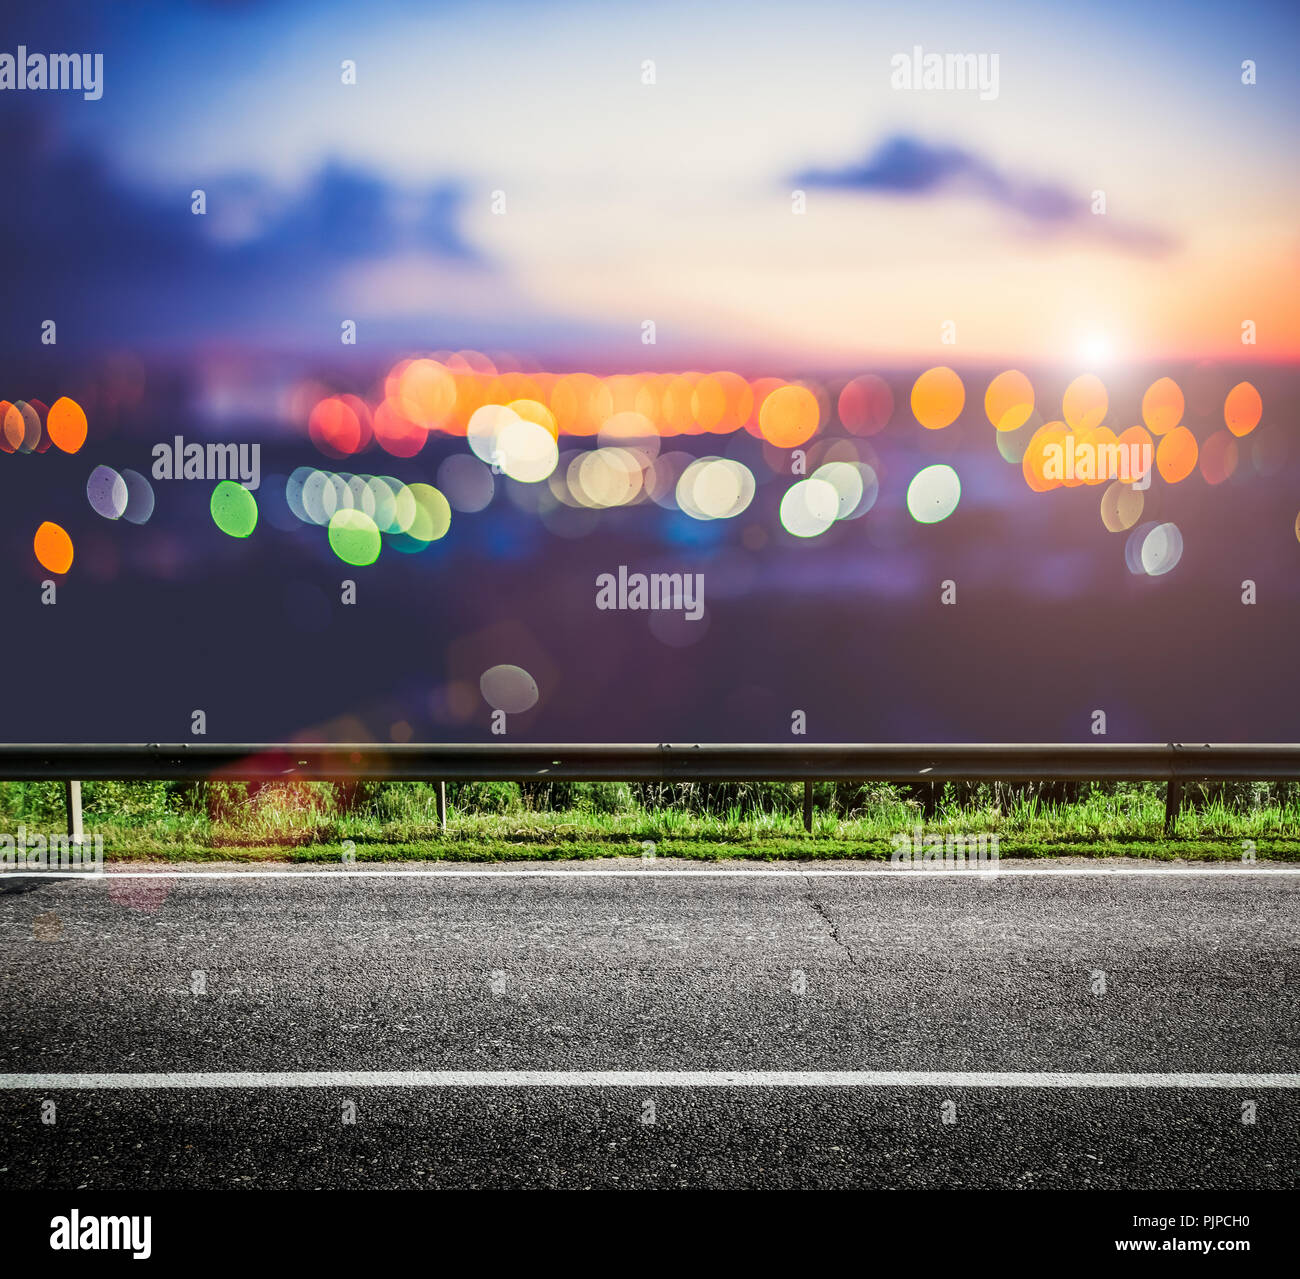 Night City Lights Bokeh Highway Road Background Stock Photo Alamy